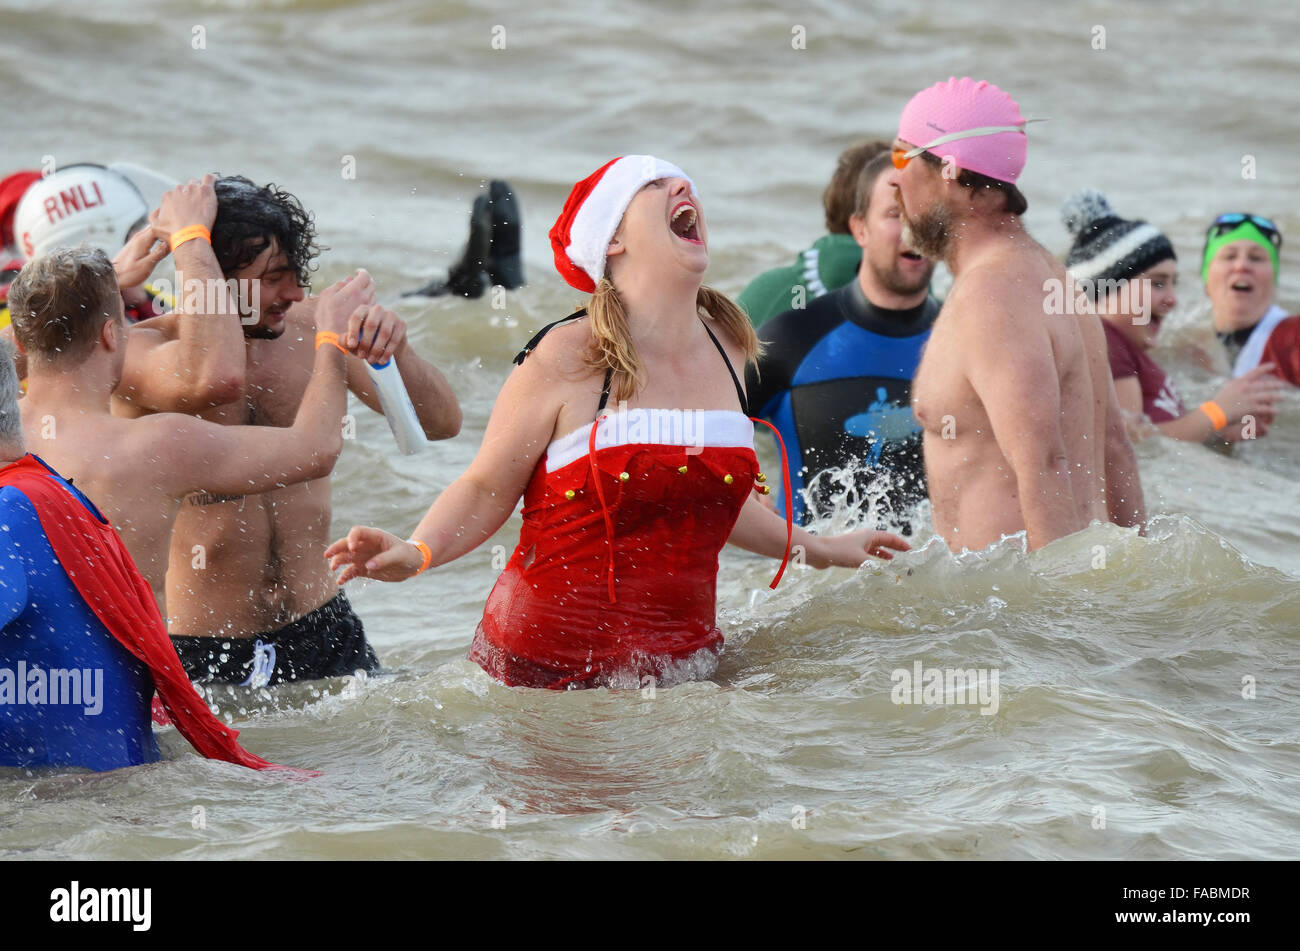 boxing-day-swim-southend-on-sea-essex-uk-swimmers-braved-the-icy-cold-FABMDR.jpg